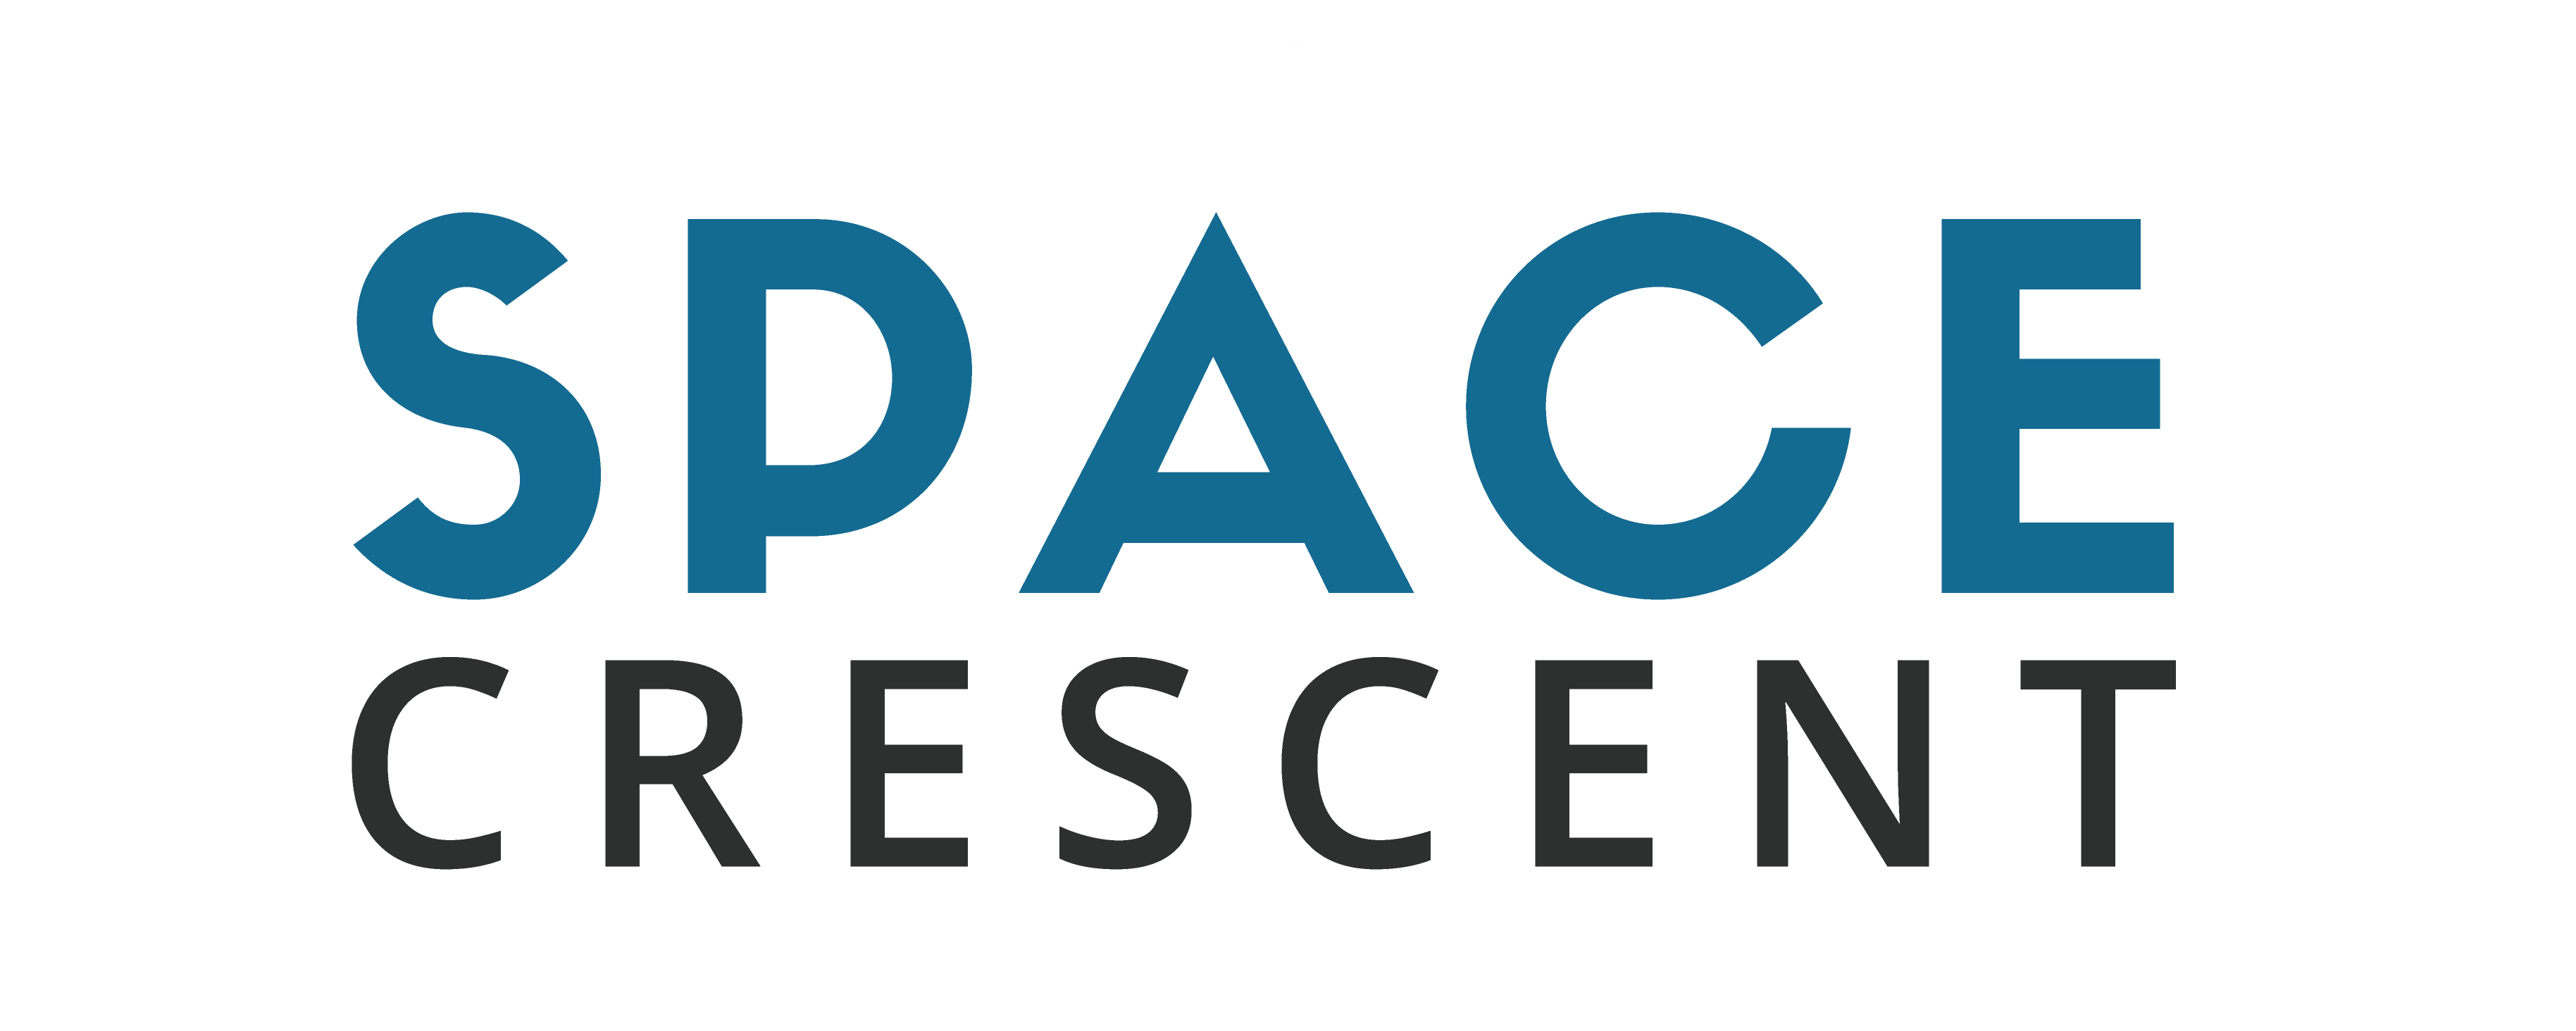 SpaceCrescent logo - text only